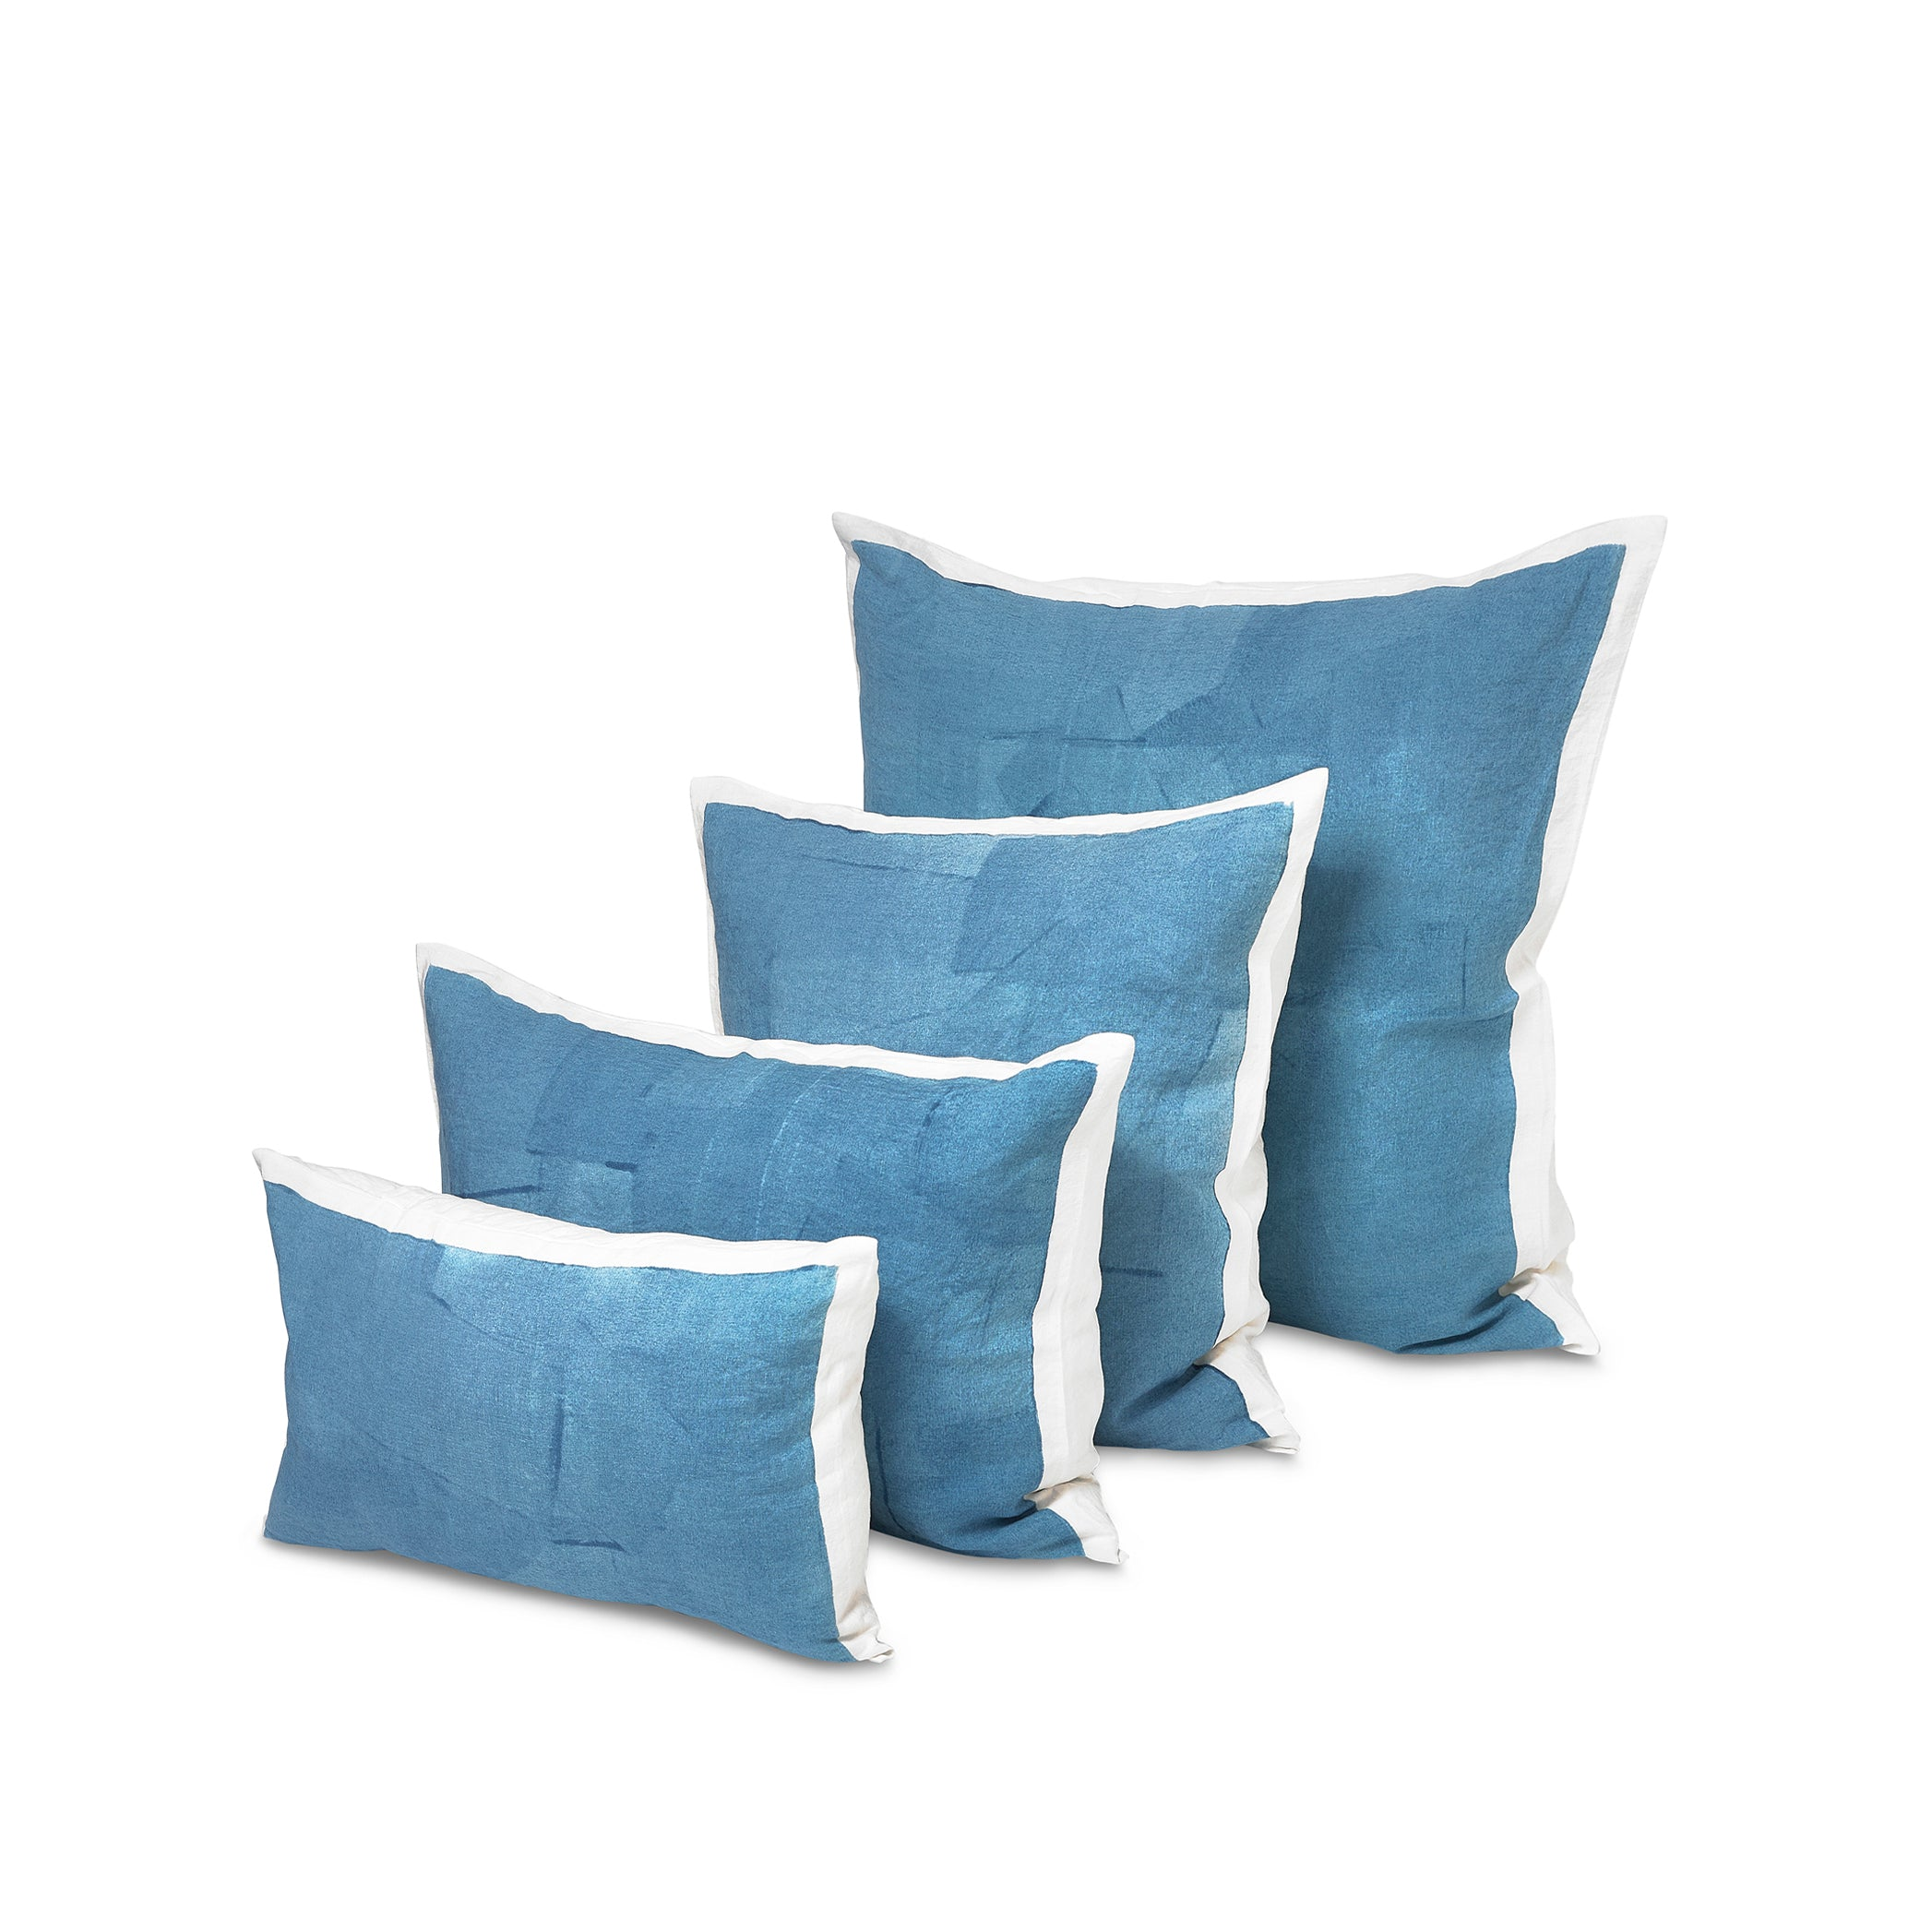 Hand Painted Linen Cushion Cover in Sky Blue, 60cm x 40cm